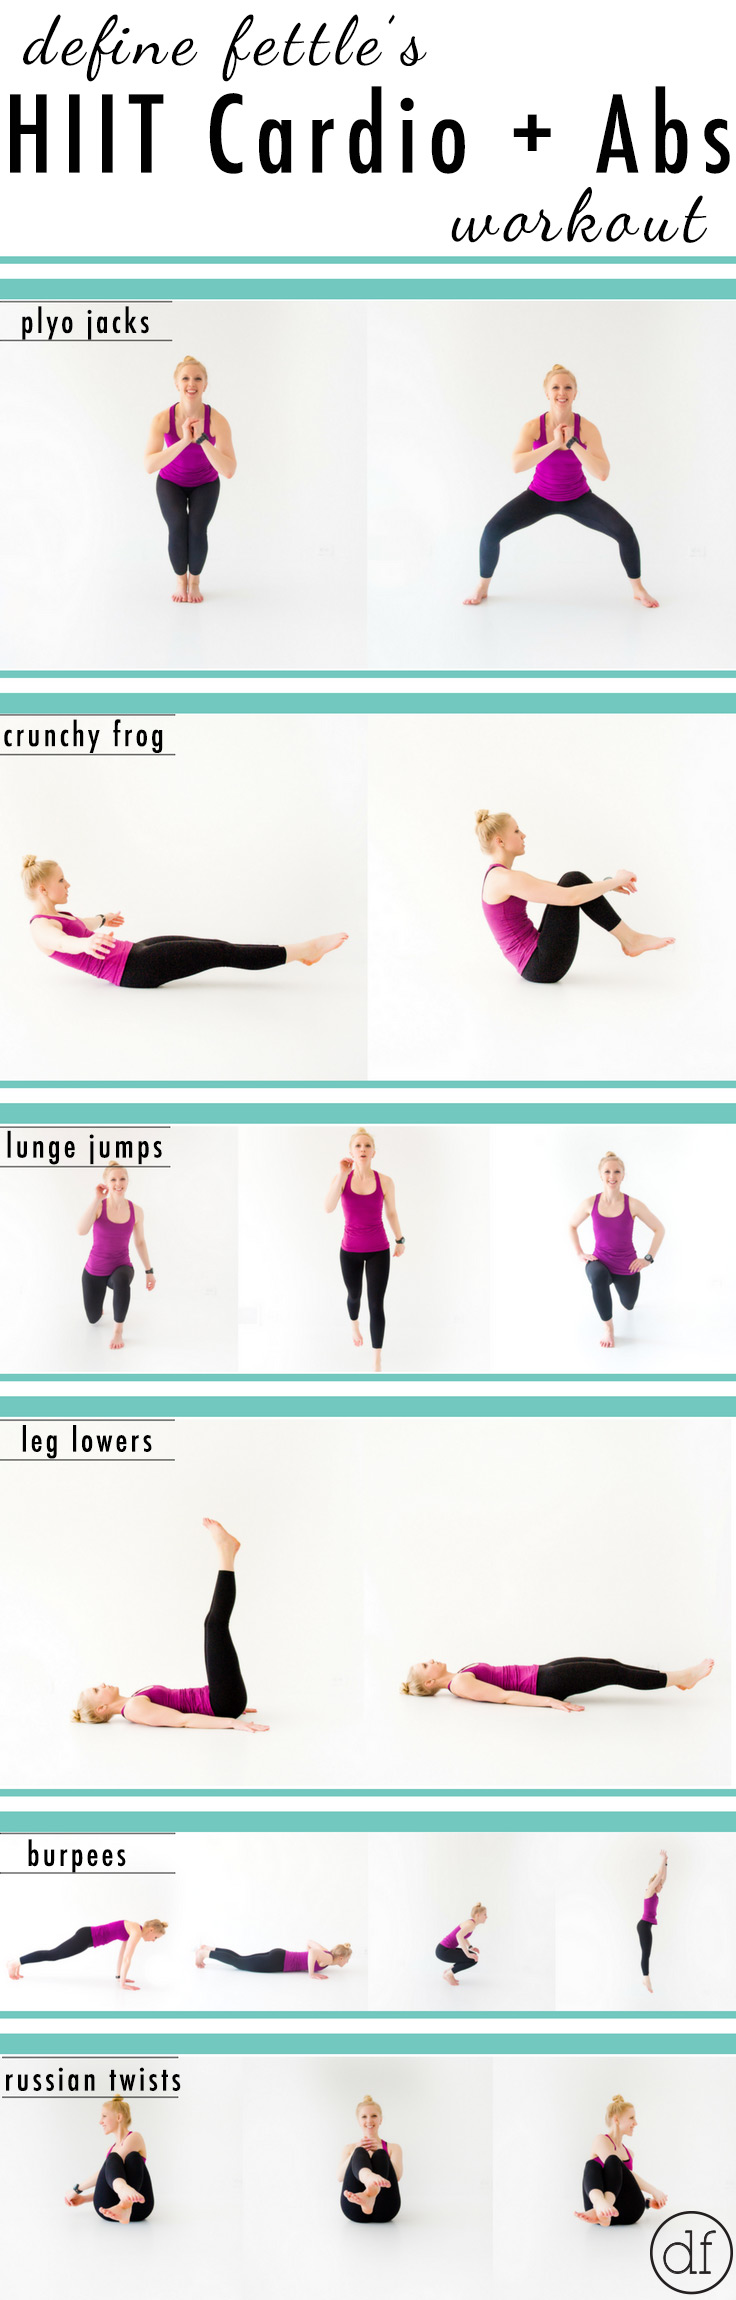 Pinterest, HIIT, Home Workout, Cardio, Quick, Simple, Equipment Free, No Equipment, Abs, Core,